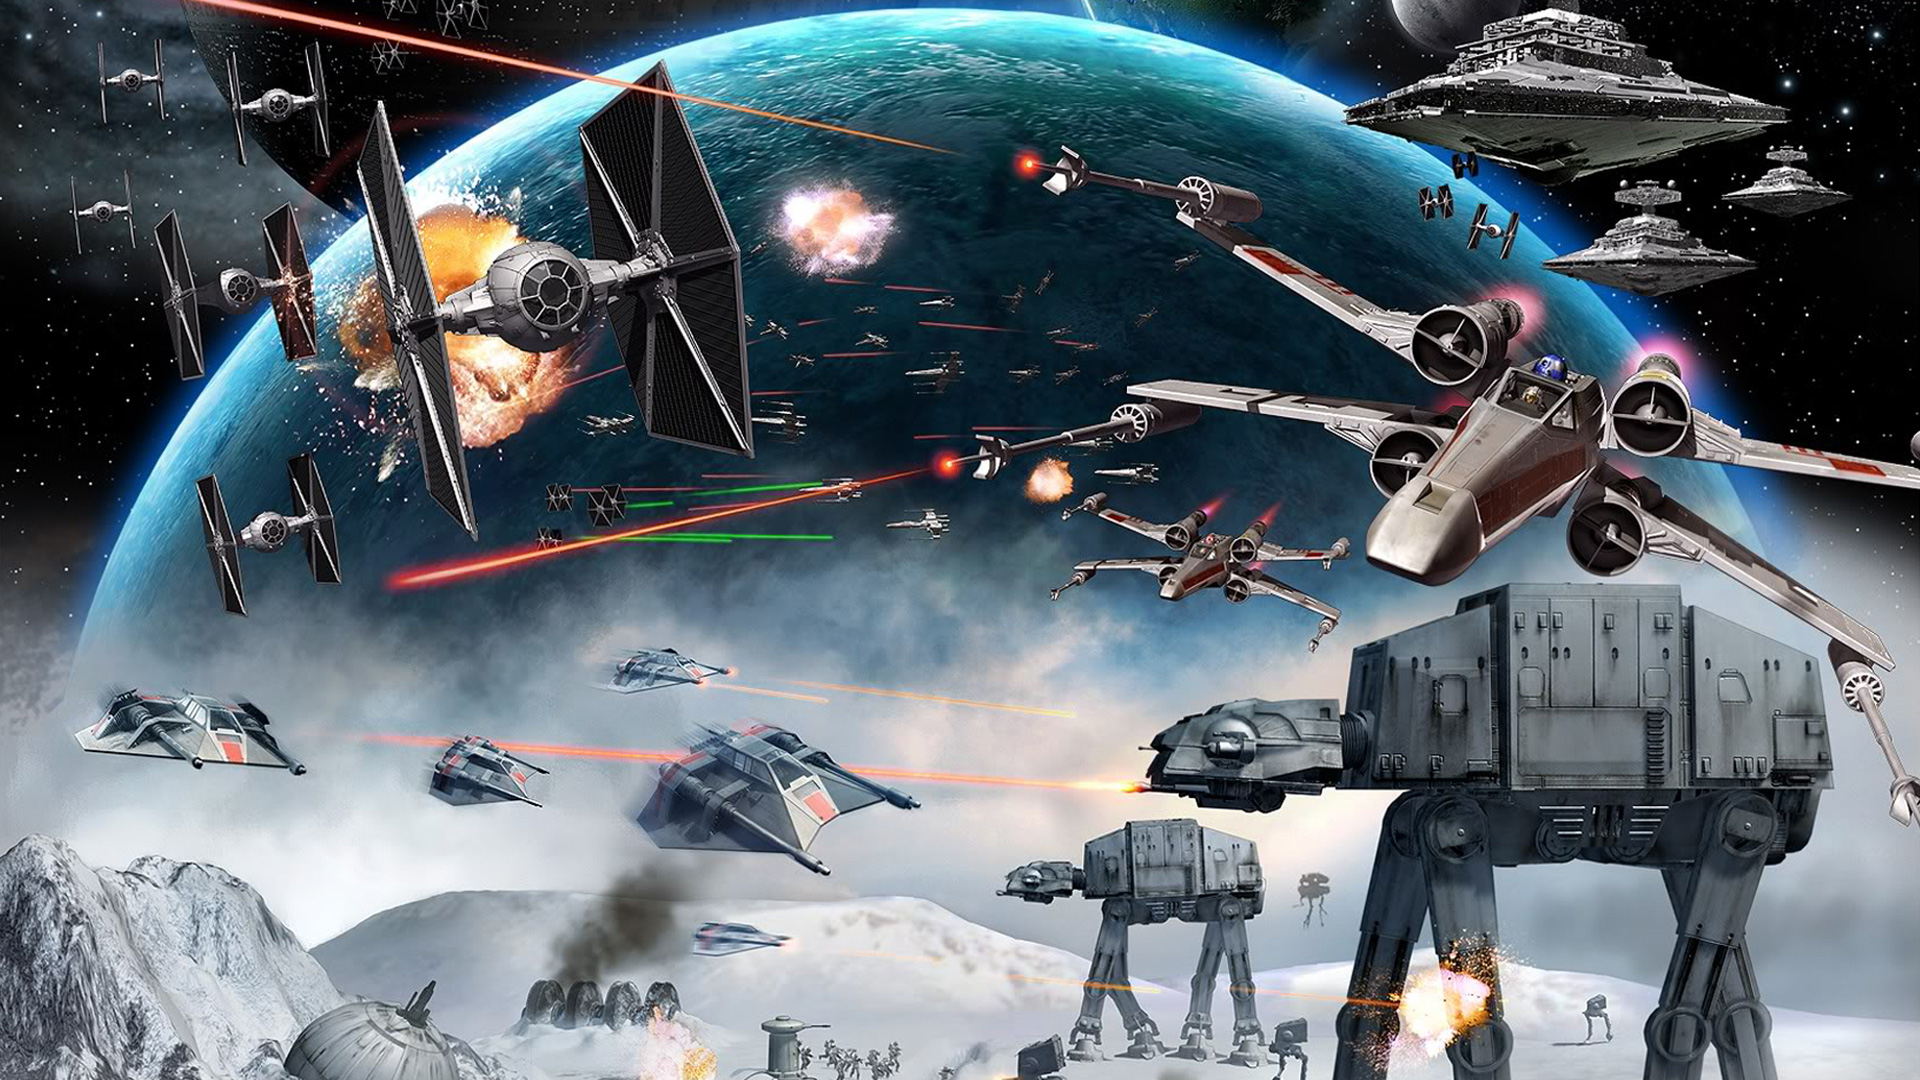 Free Star Wars Empire At War Wallpaper In 1920x1080